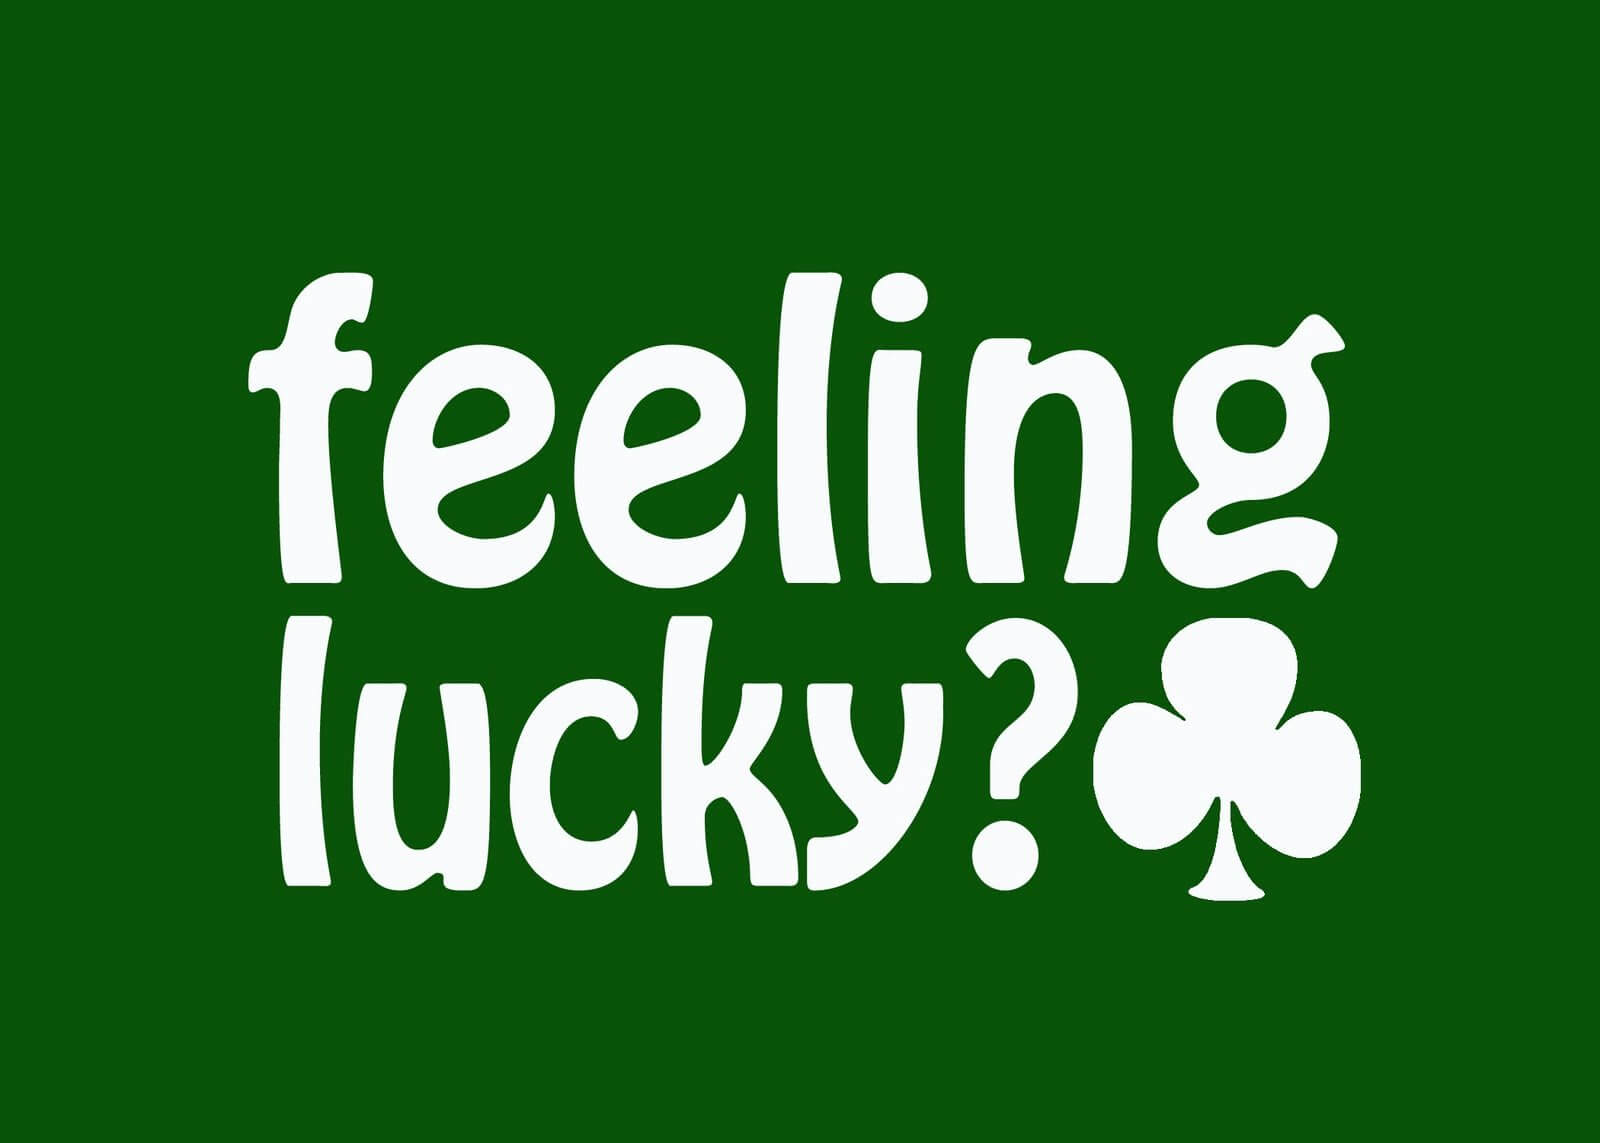 DO YOU FEEL LUCKY!? One winner gets FREE car on St. Patrick's Day!